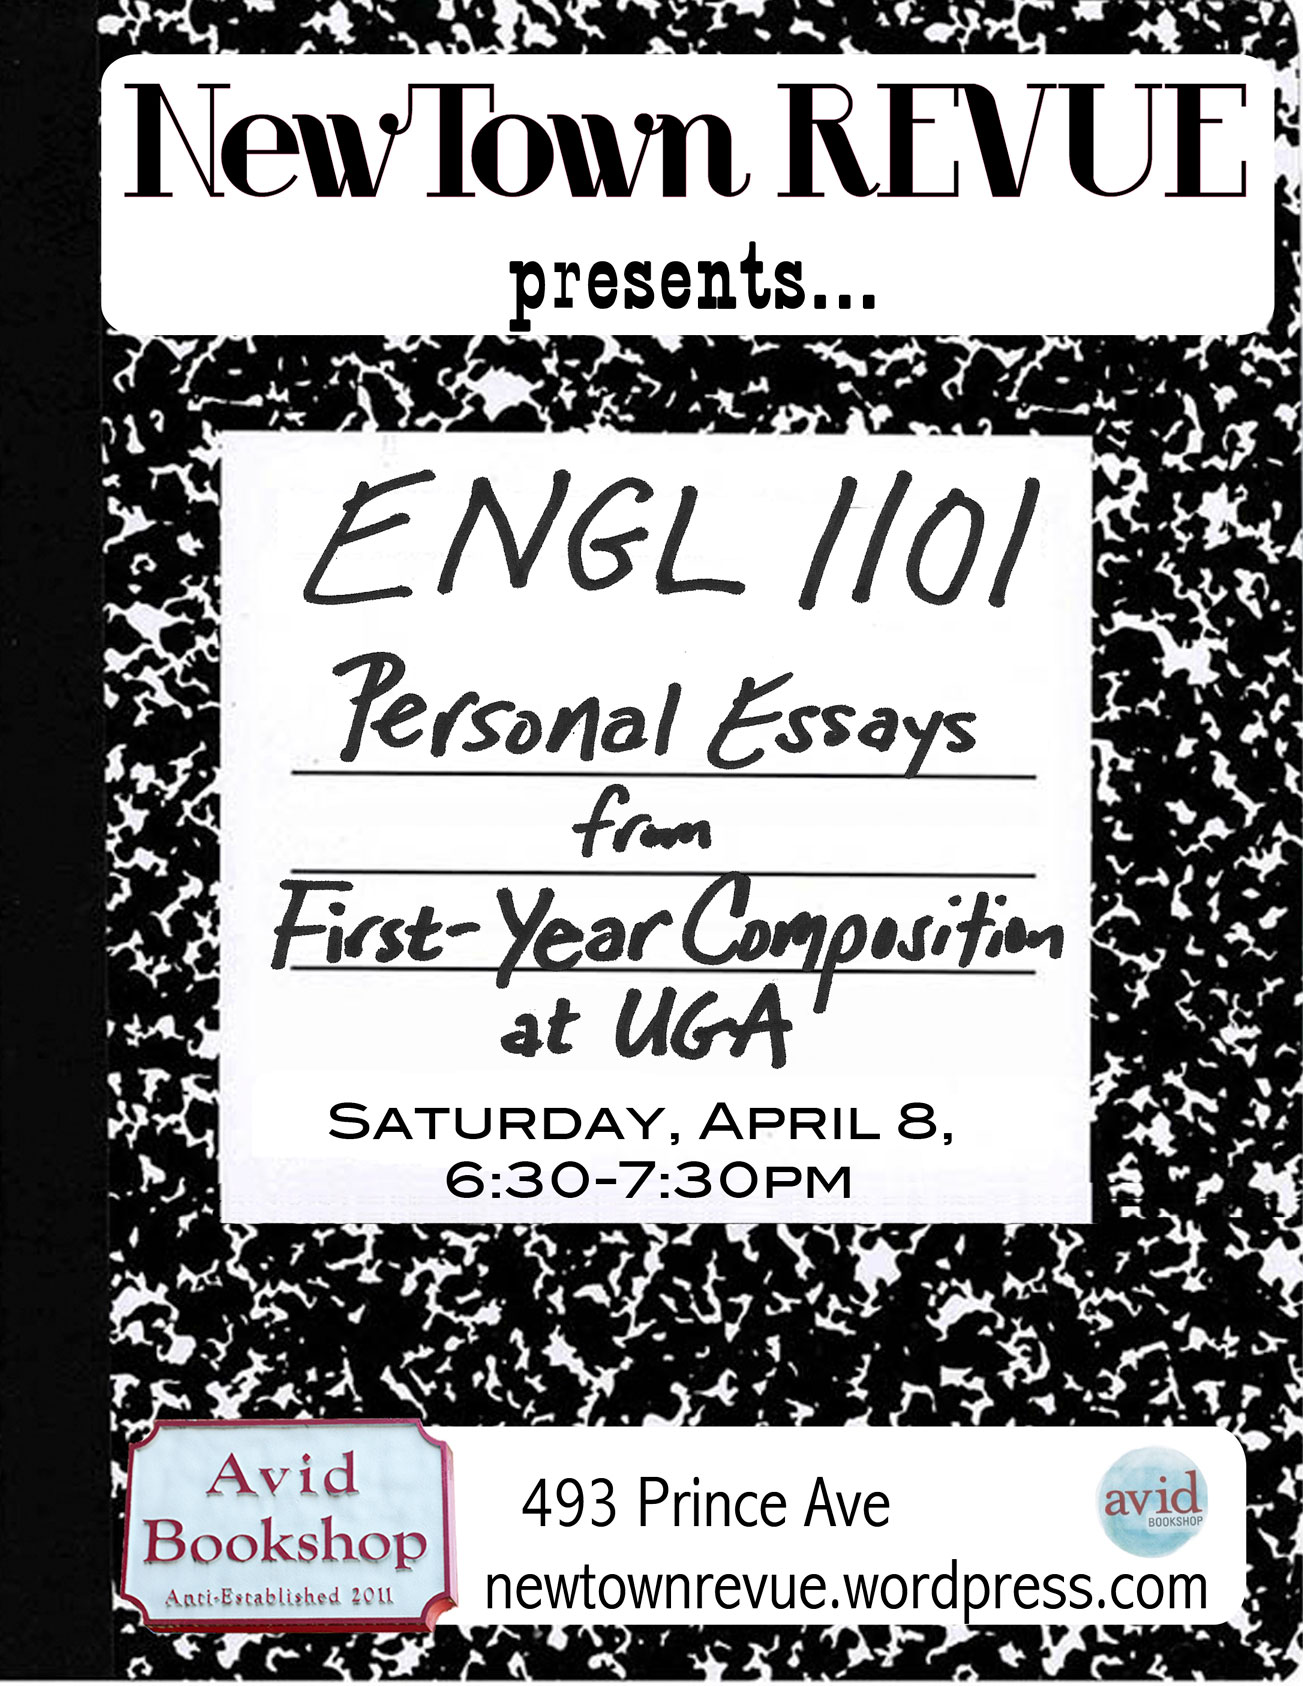 026 Uga Essays Essay Example Ntr April Surprising That Worked Early Application Sample Admissions Full